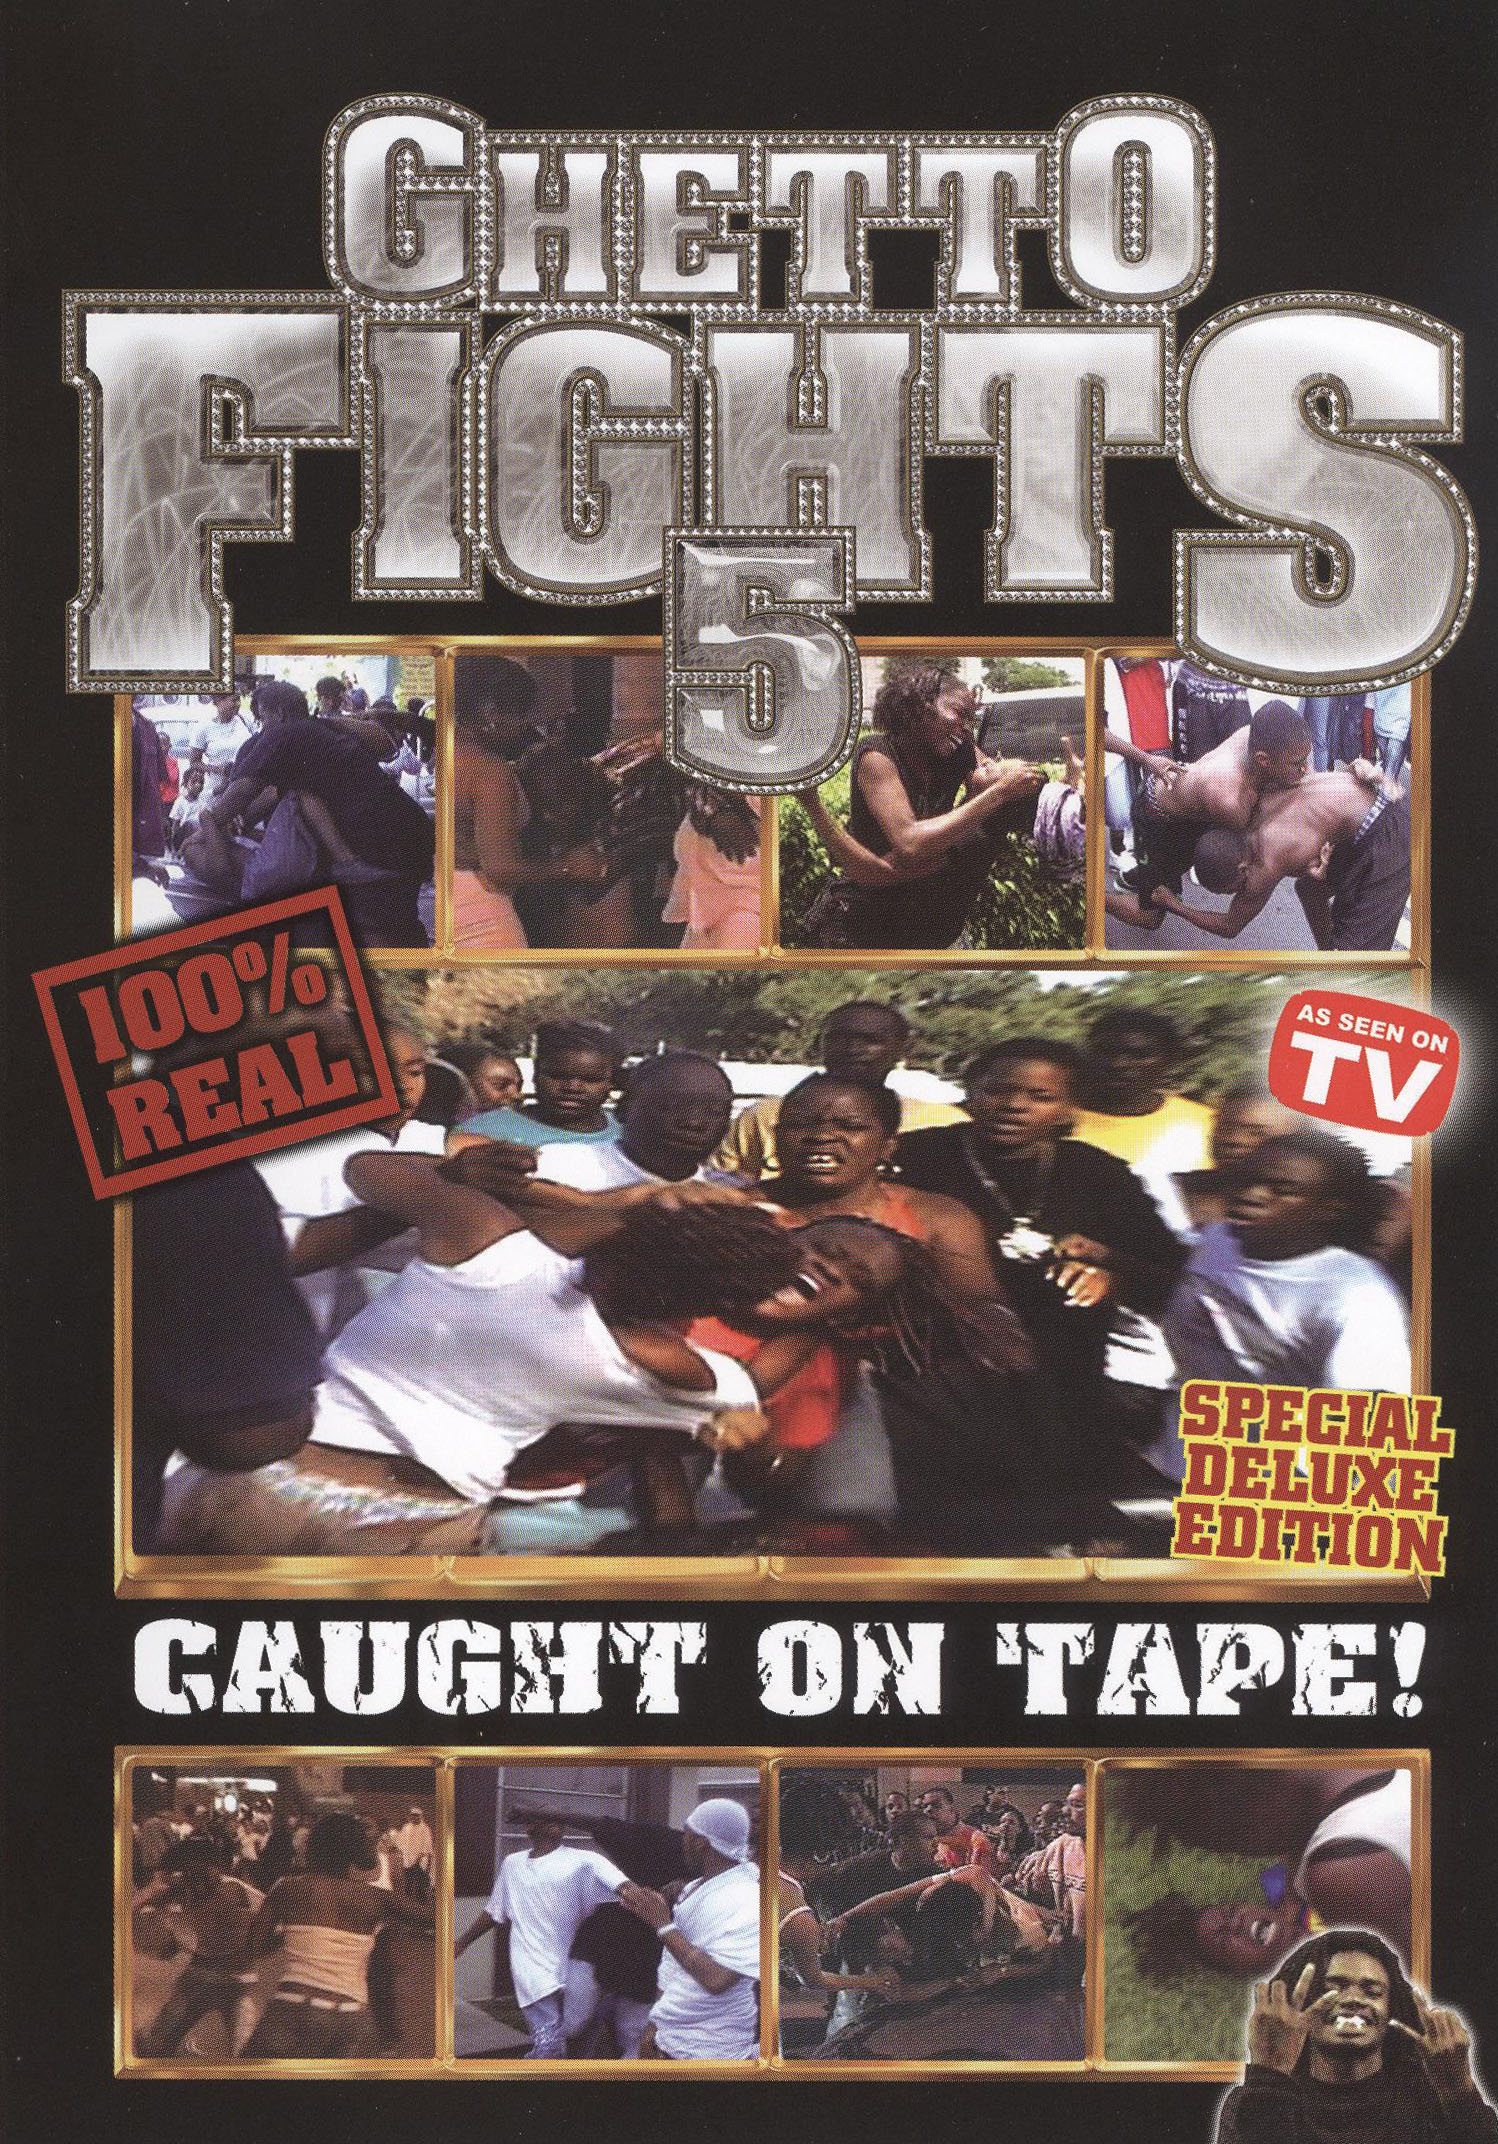 ghetto fights 5 2009 related allmovie